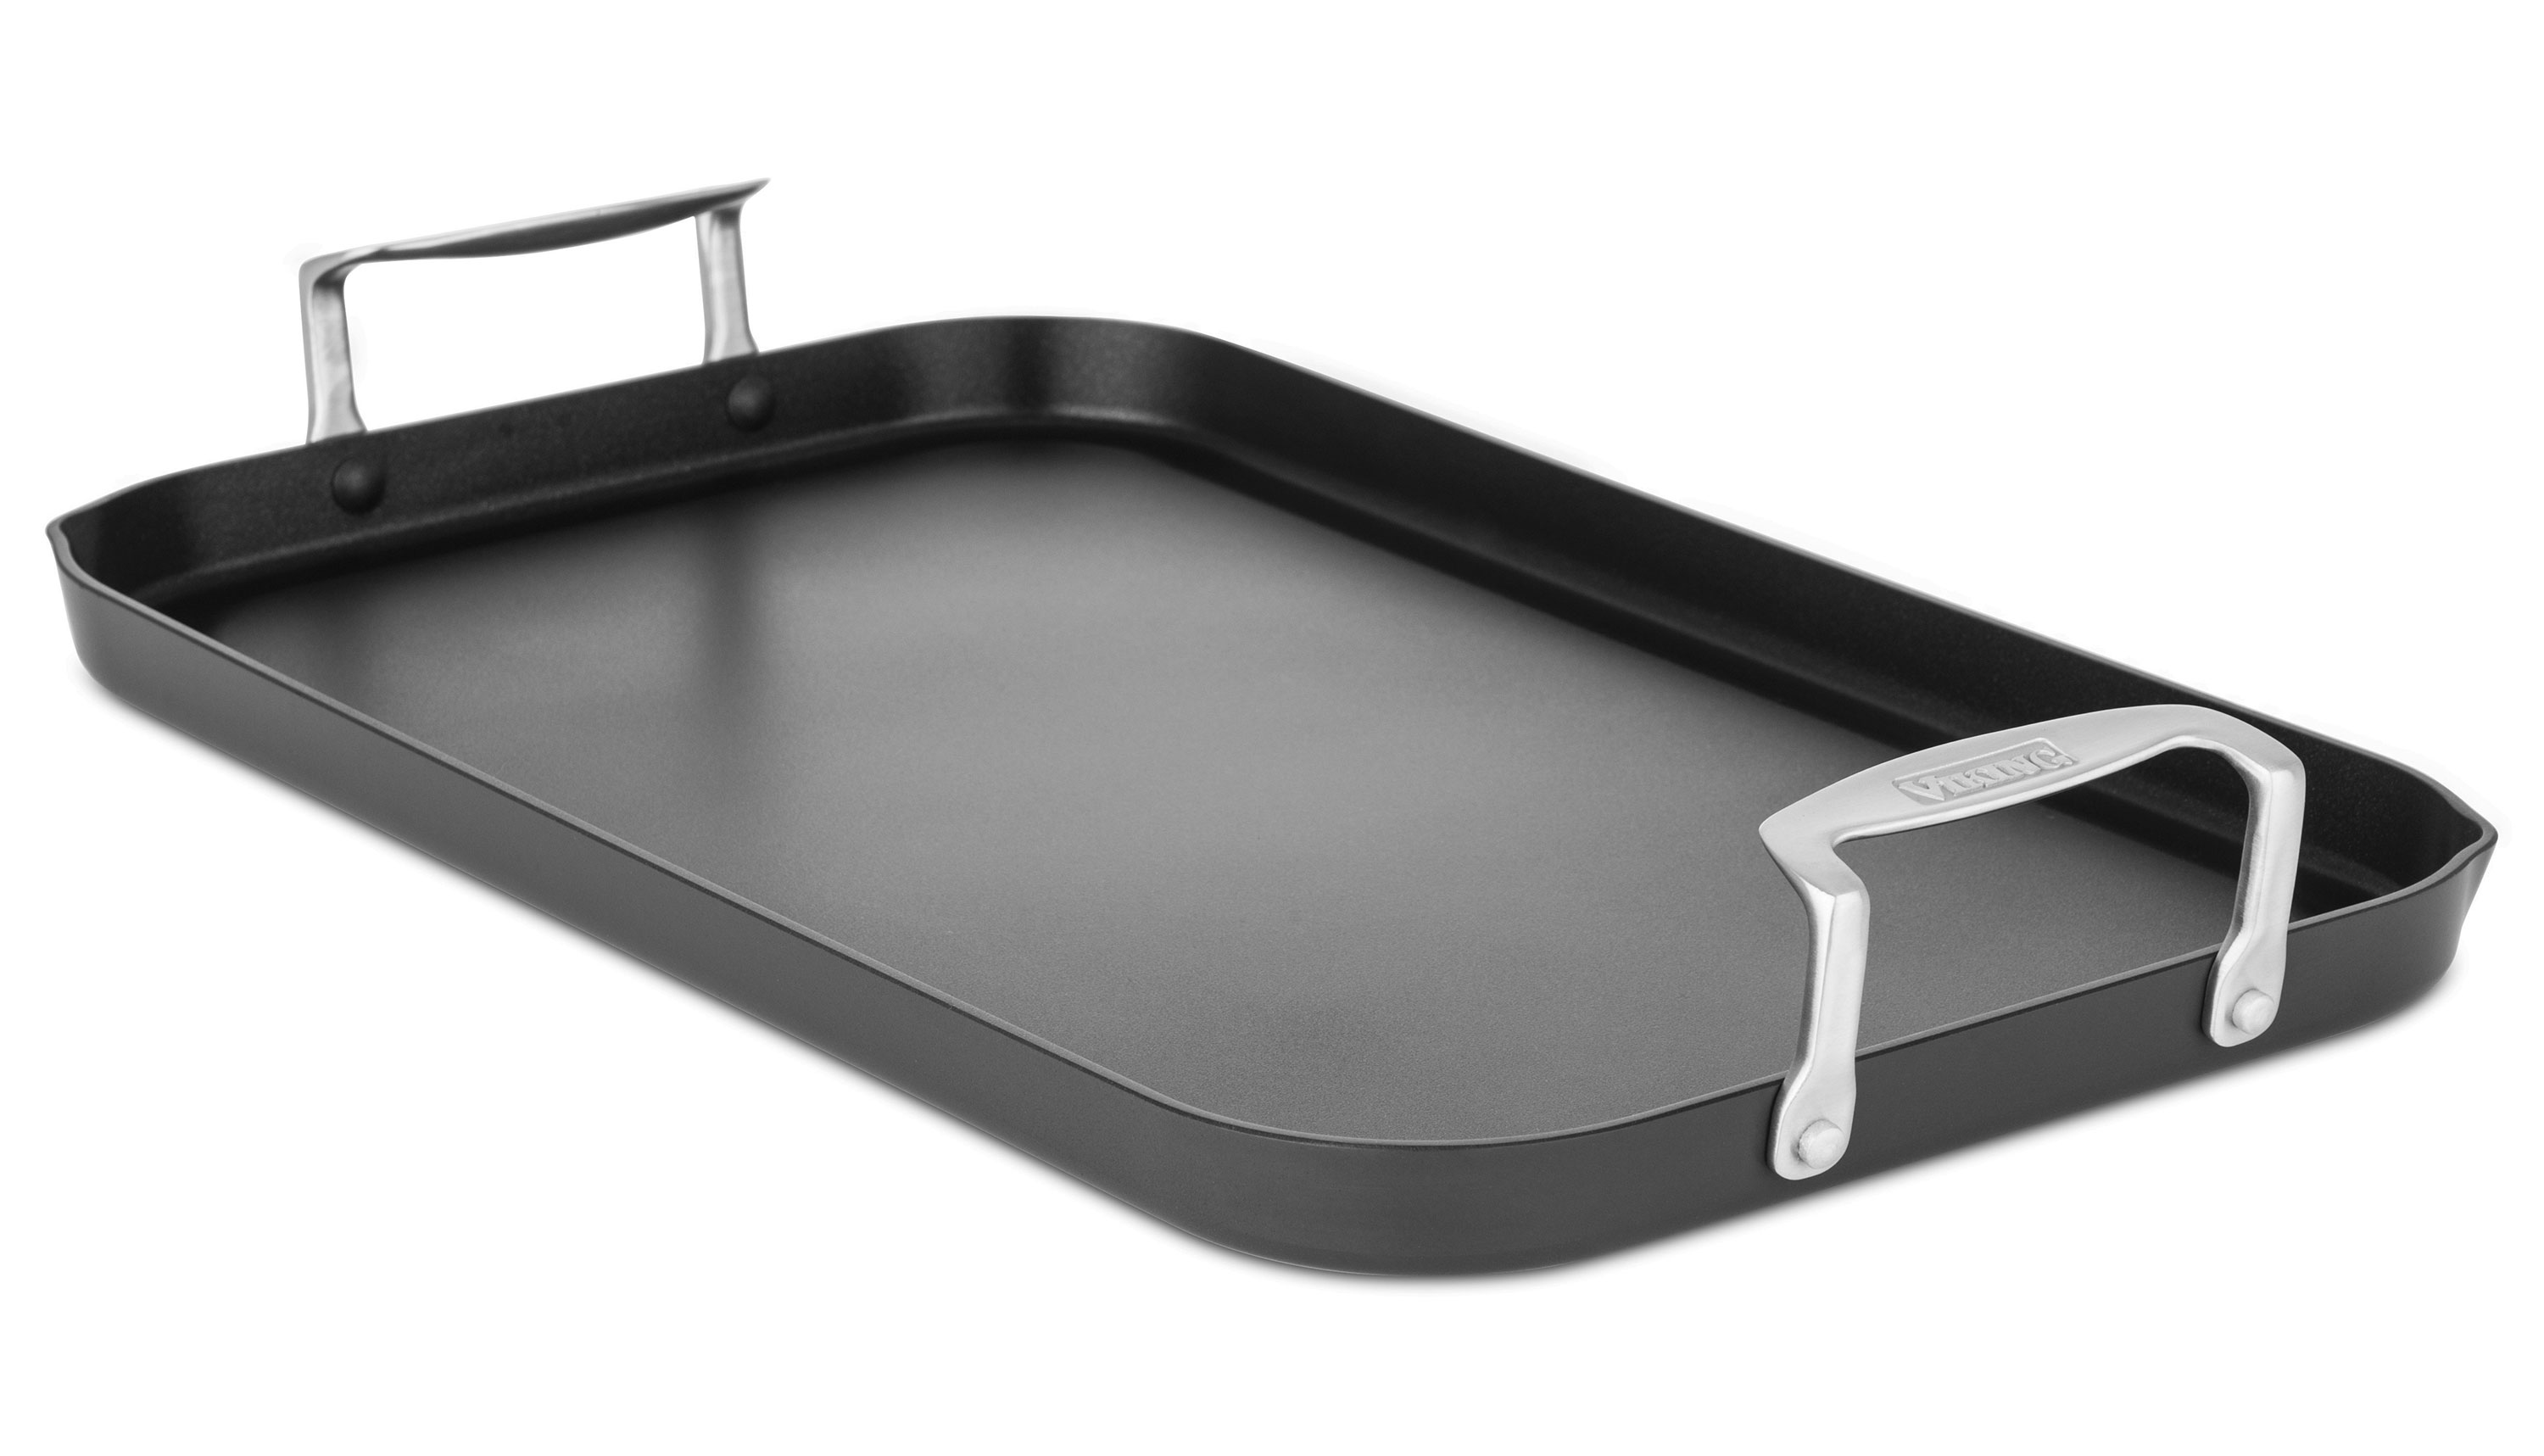 Viking Hard Anodized Nonstick Double Burner Griddle 18 x 10inch